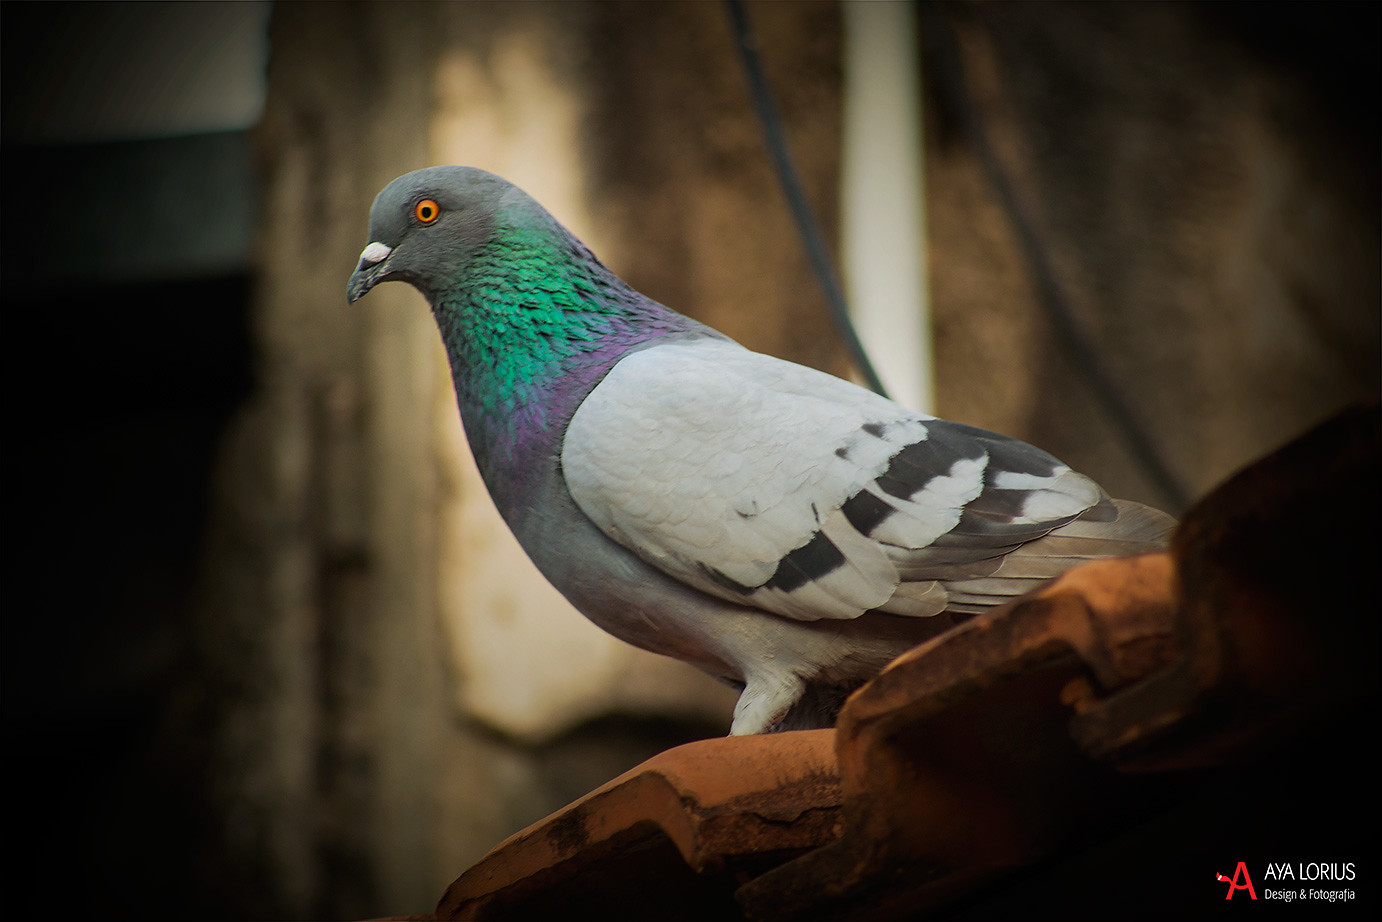 beautiful pigeon picture jenifer herrera said